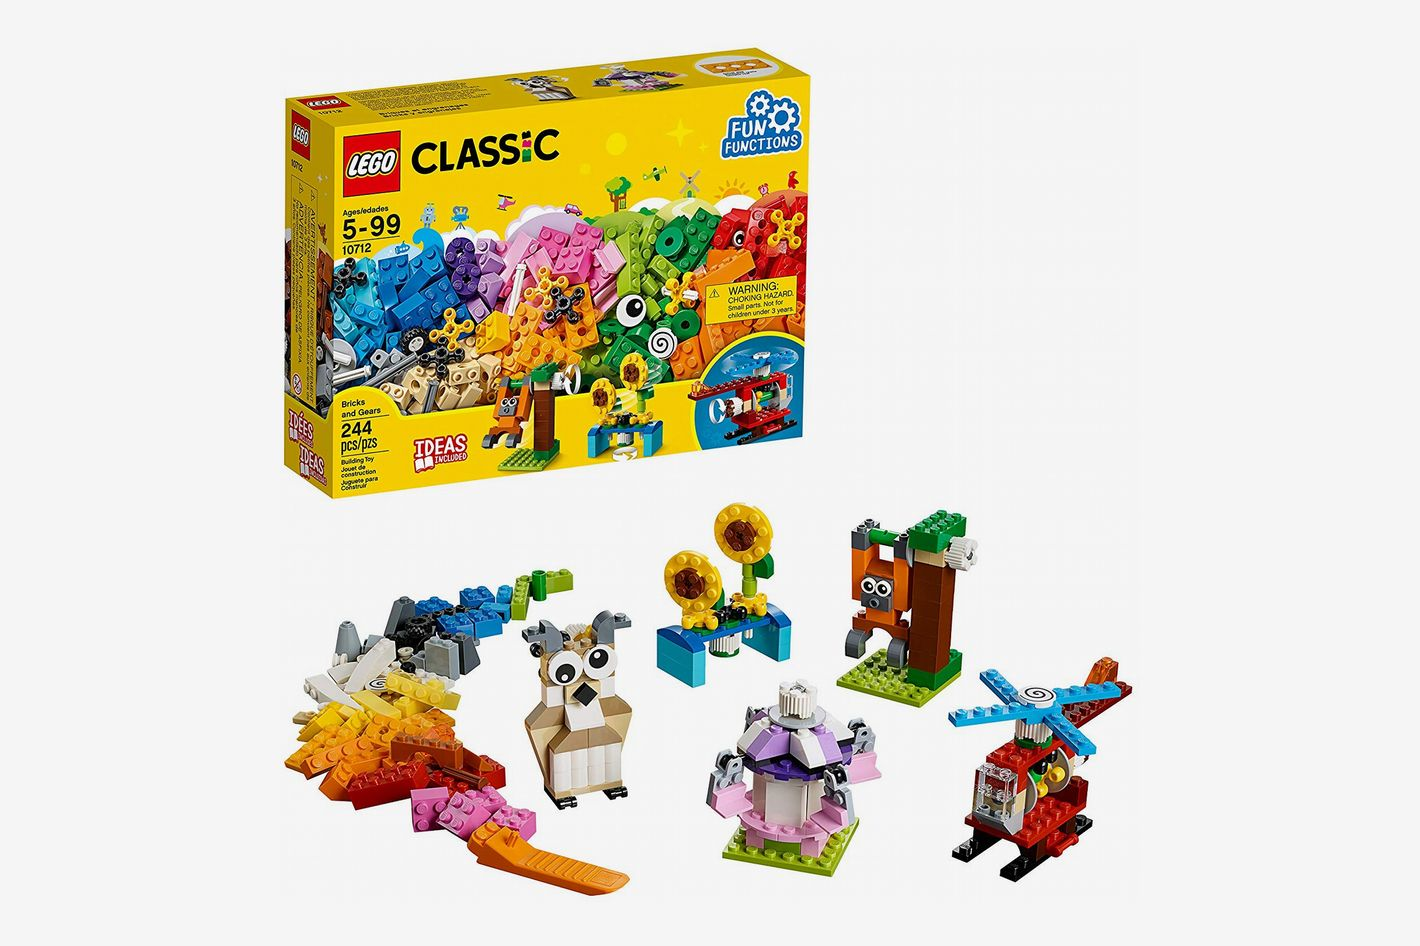 Lego Classic Bricks and Gears Building Set